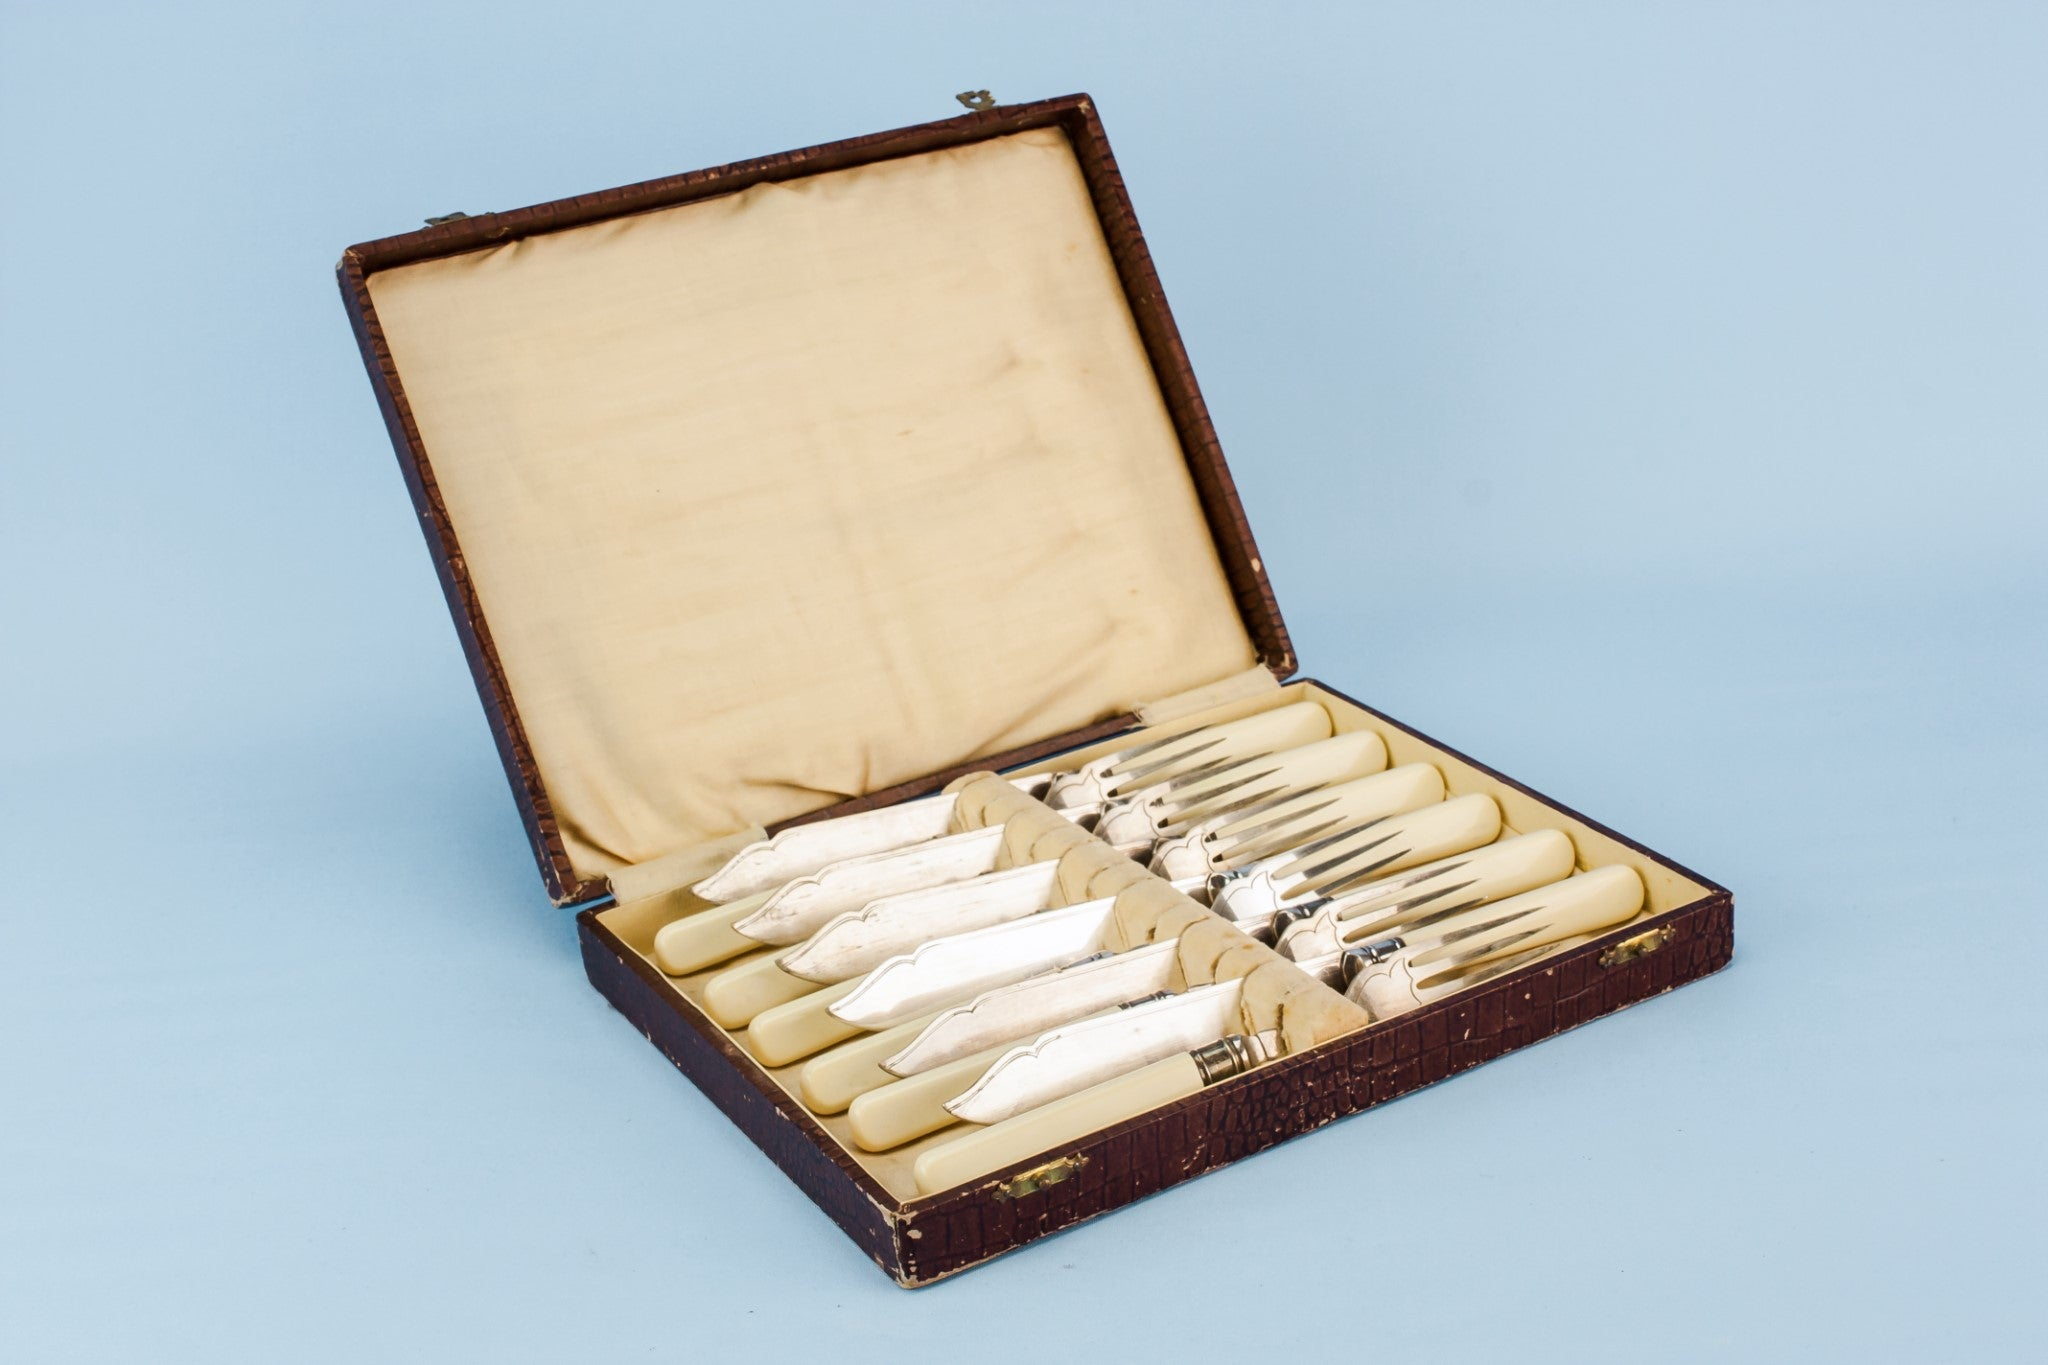 Dessert cutlery set for 6